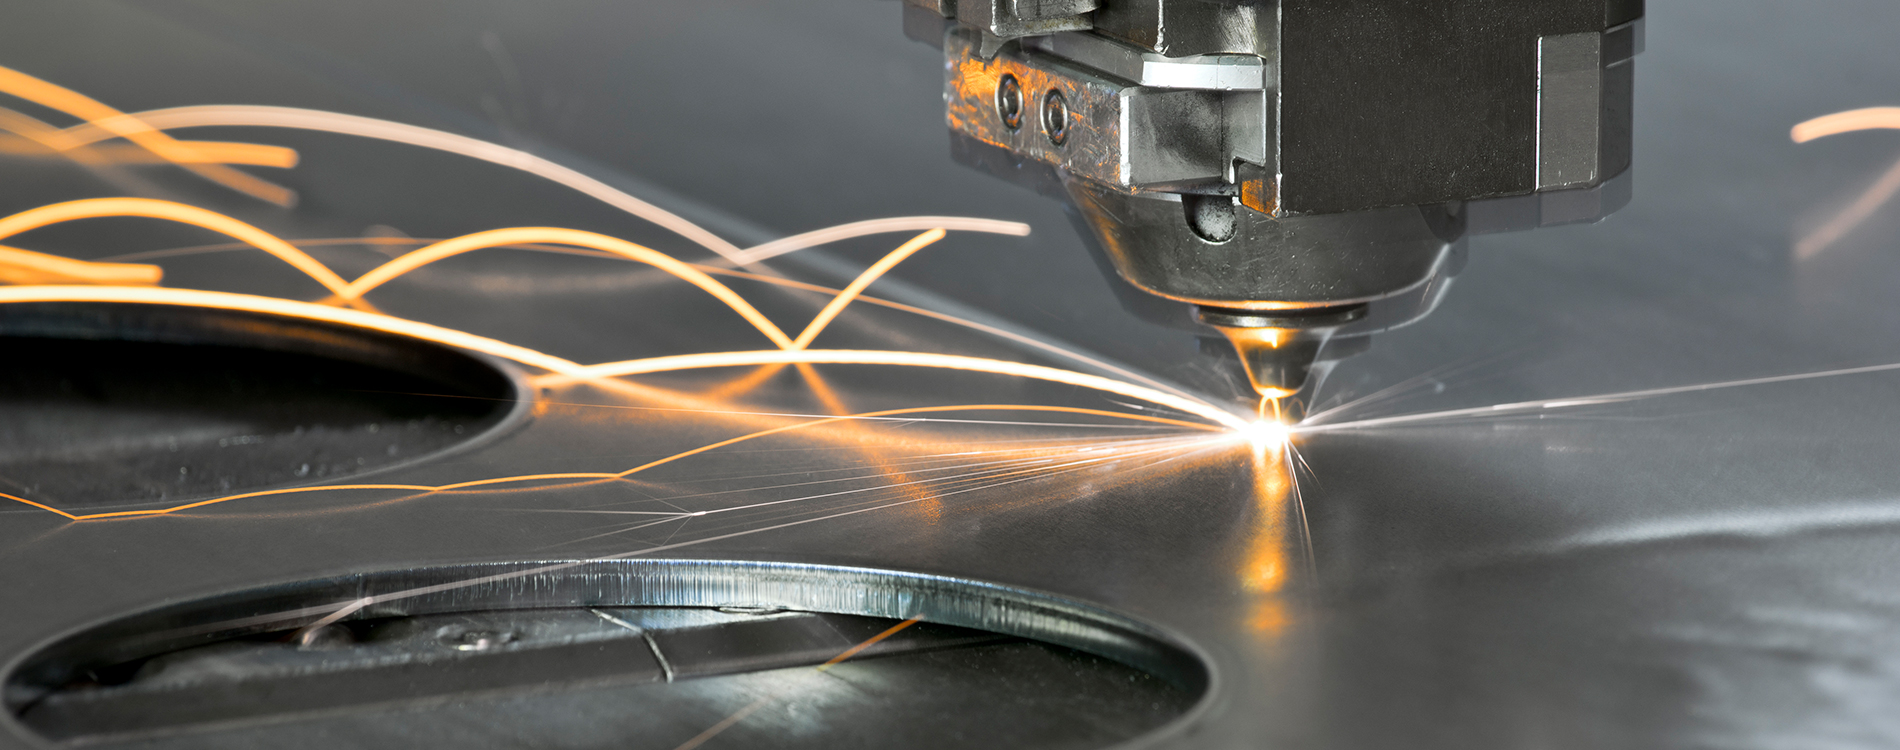 Engineering & metalworking insurance from Premier Insurance Consultants